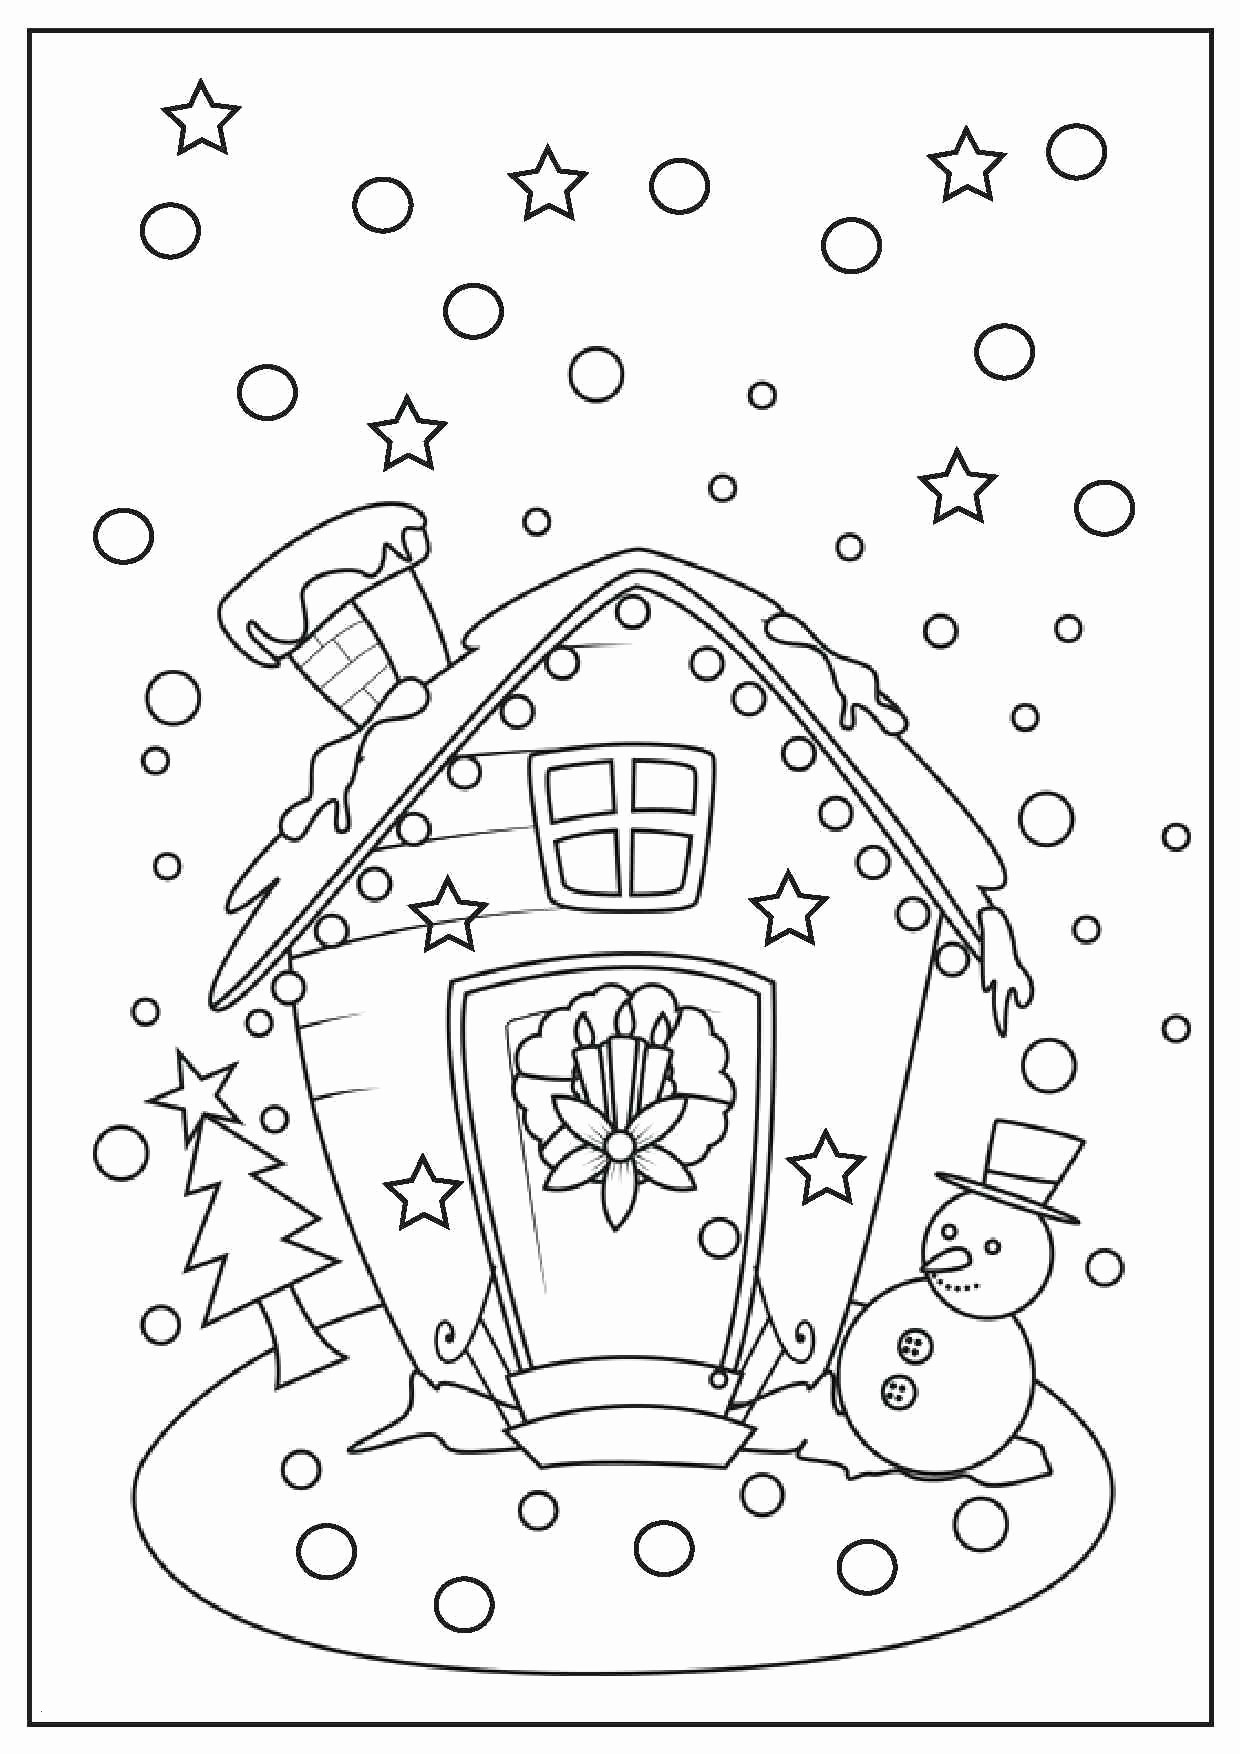 coloring pages for free Collection-Coloring Page A Frog Free Coloring Lovely ¢‹†…¡ Inspirational Frog Colouring 0d Free 10-o